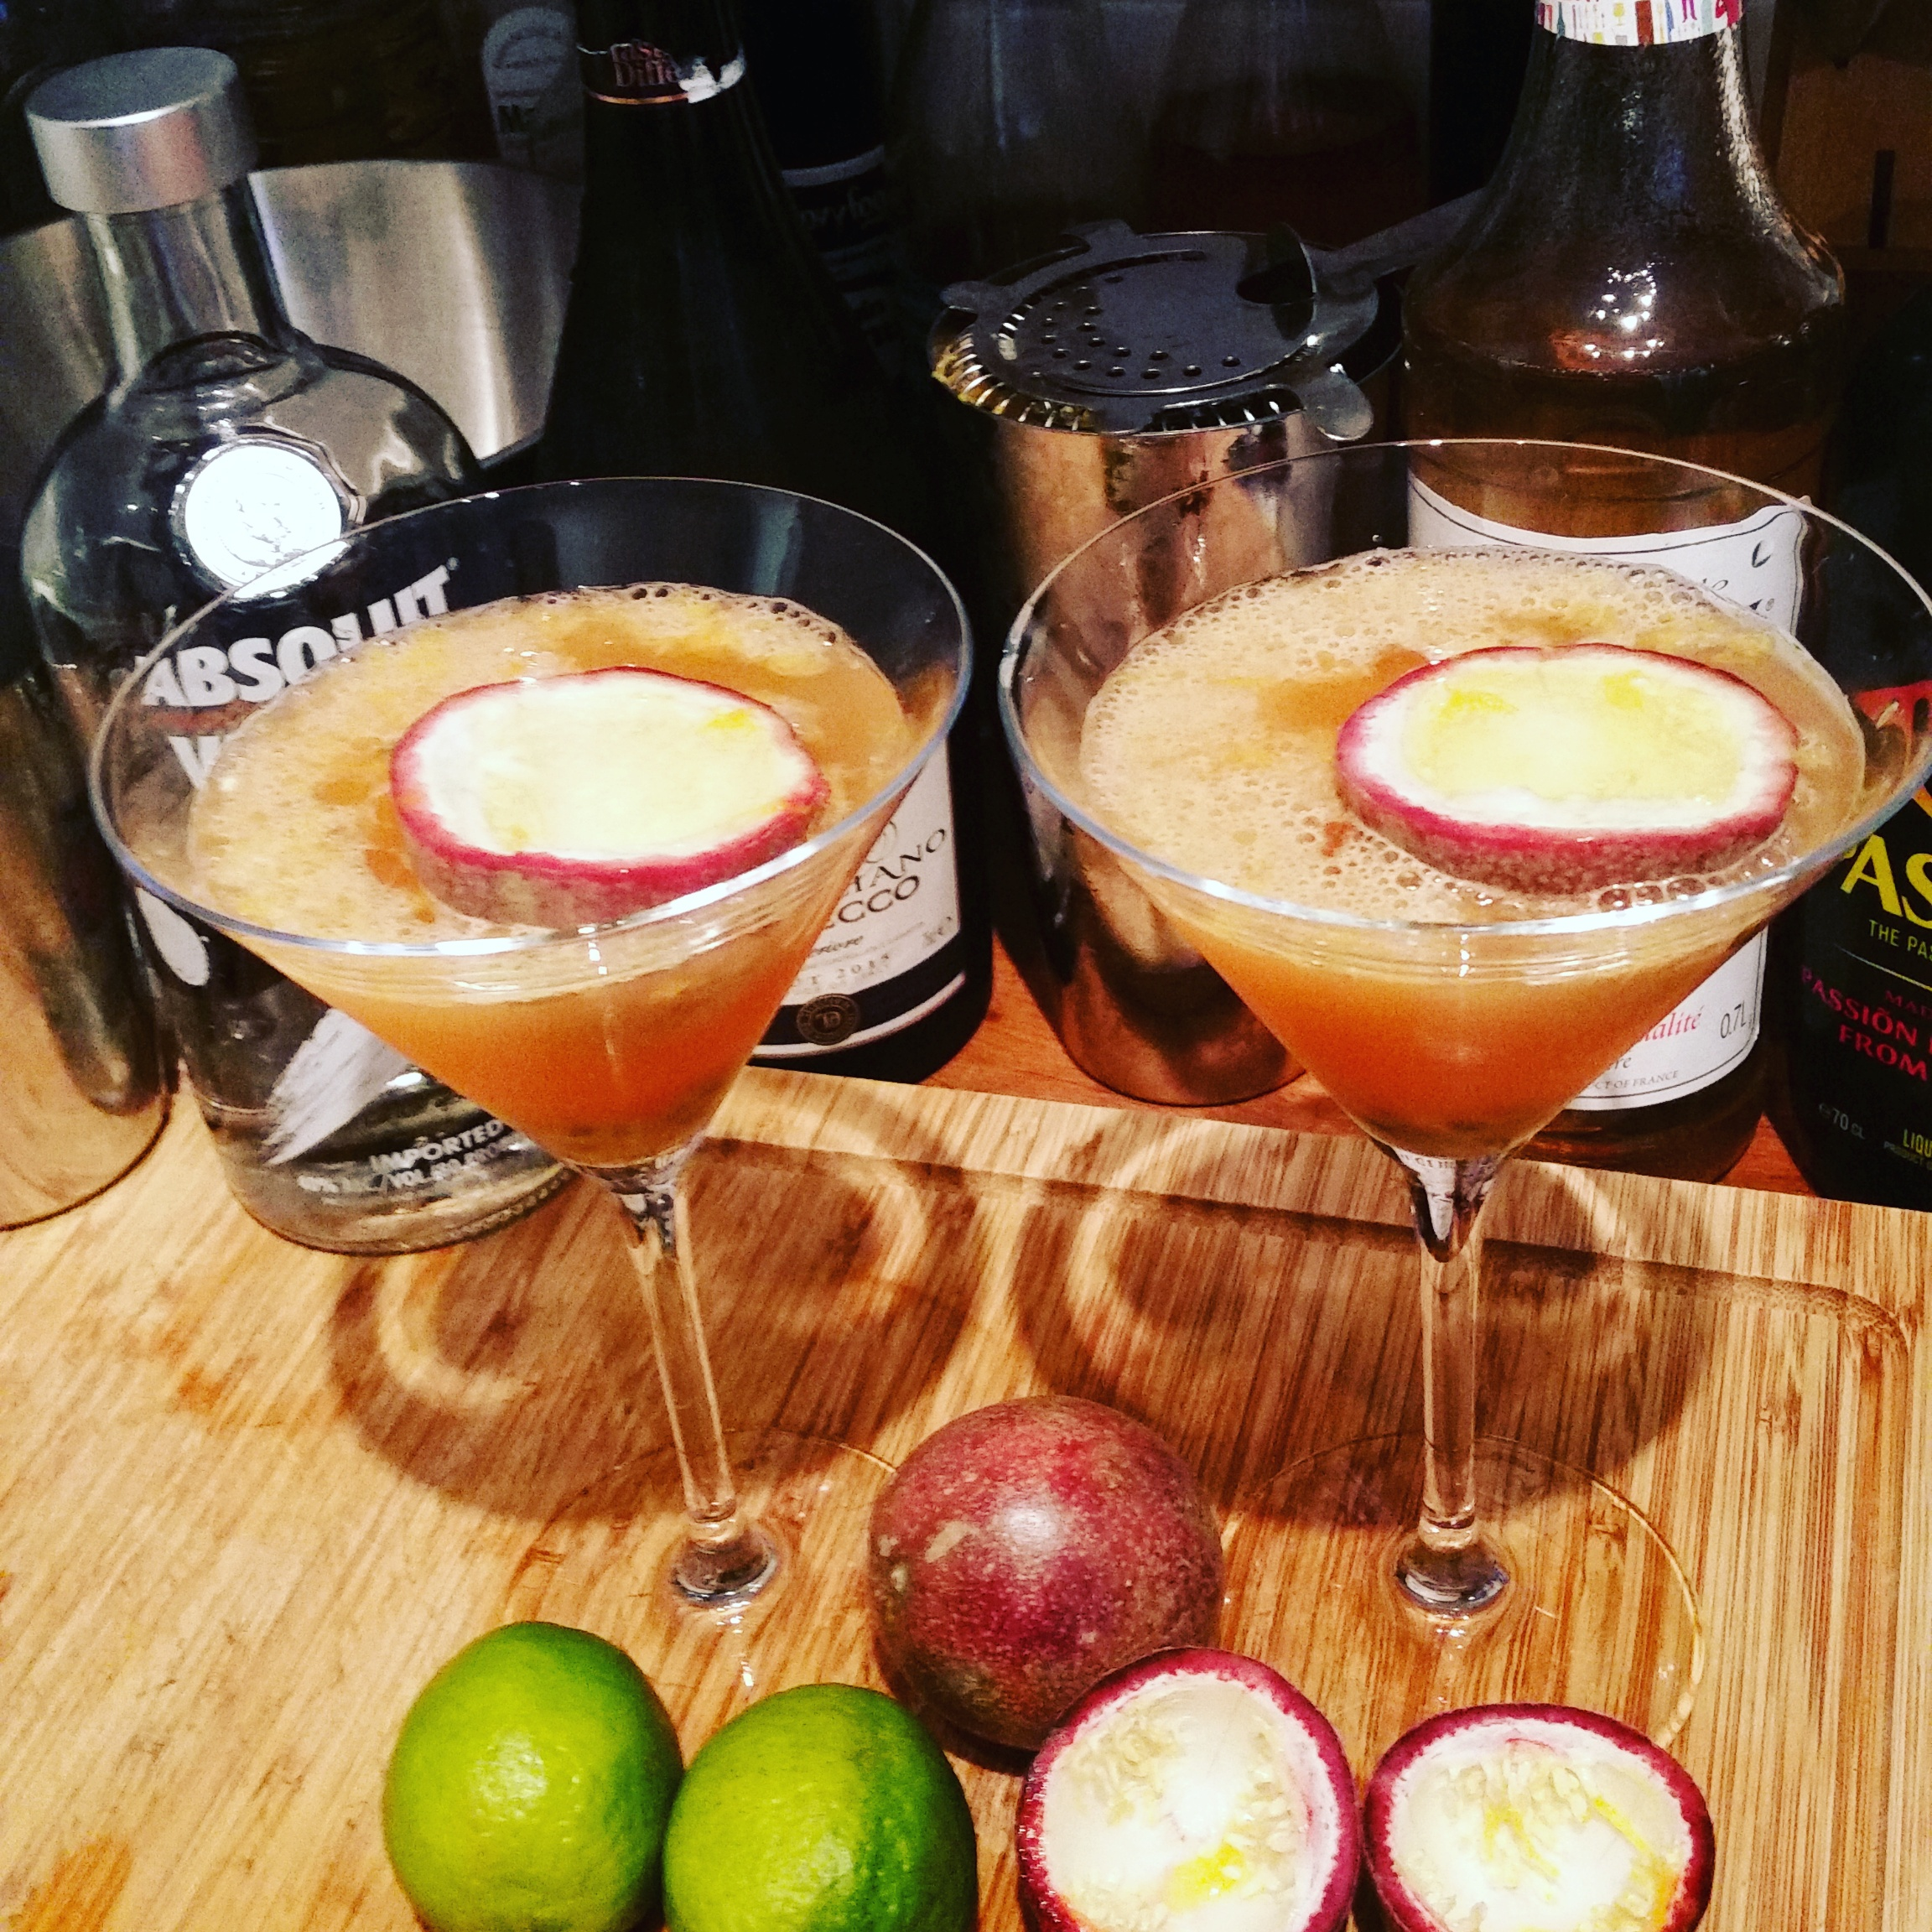 Pornstar Martini in a daiquiri glass with passionfruit garnish